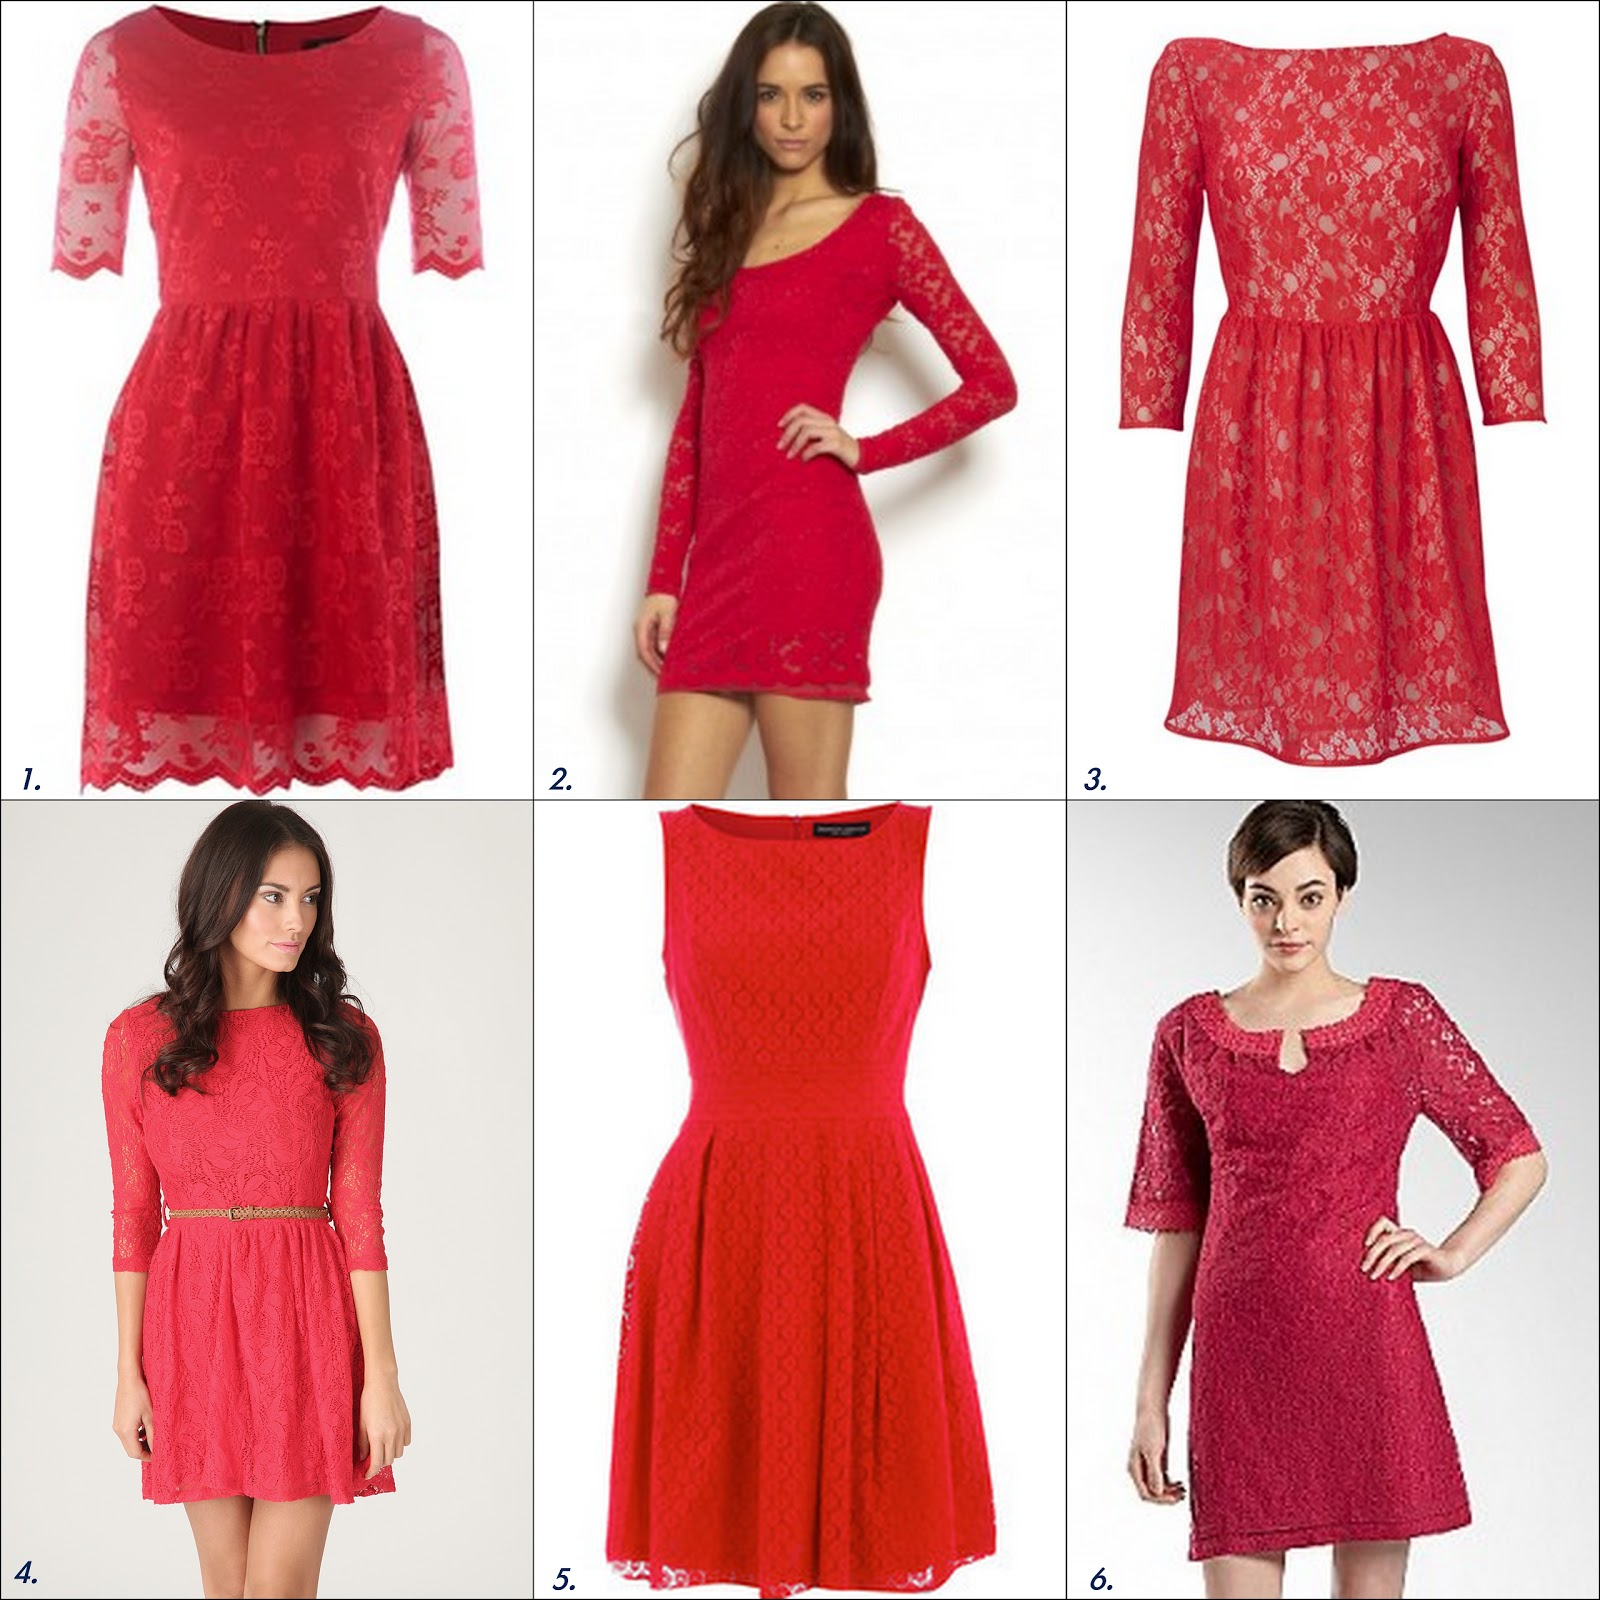 Frills and Thrills: The Red Lace Dress Trend